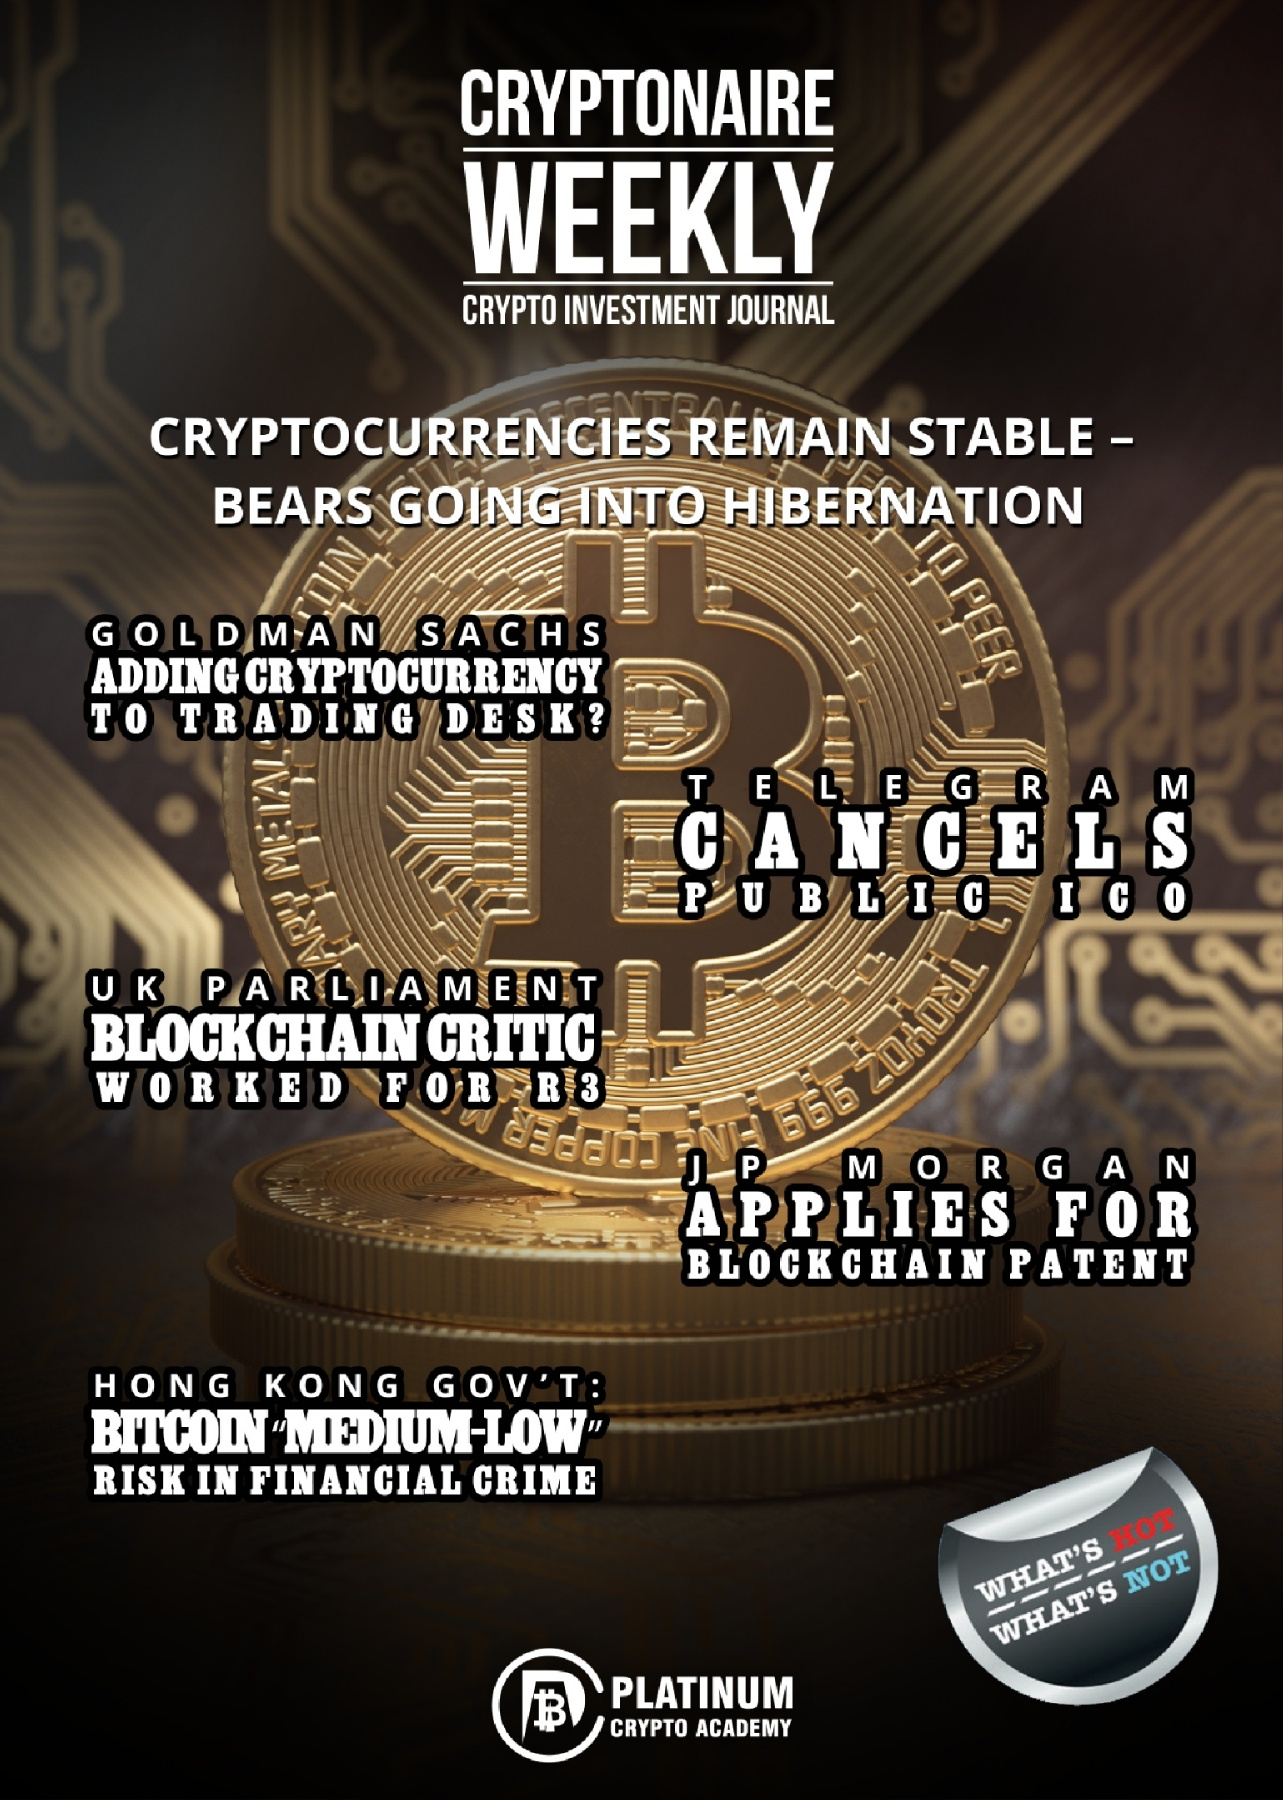 8th MAY 2018 CRYPTONAIRE WEEKLY Pages 1 - 18 - Text Version | AnyFlip